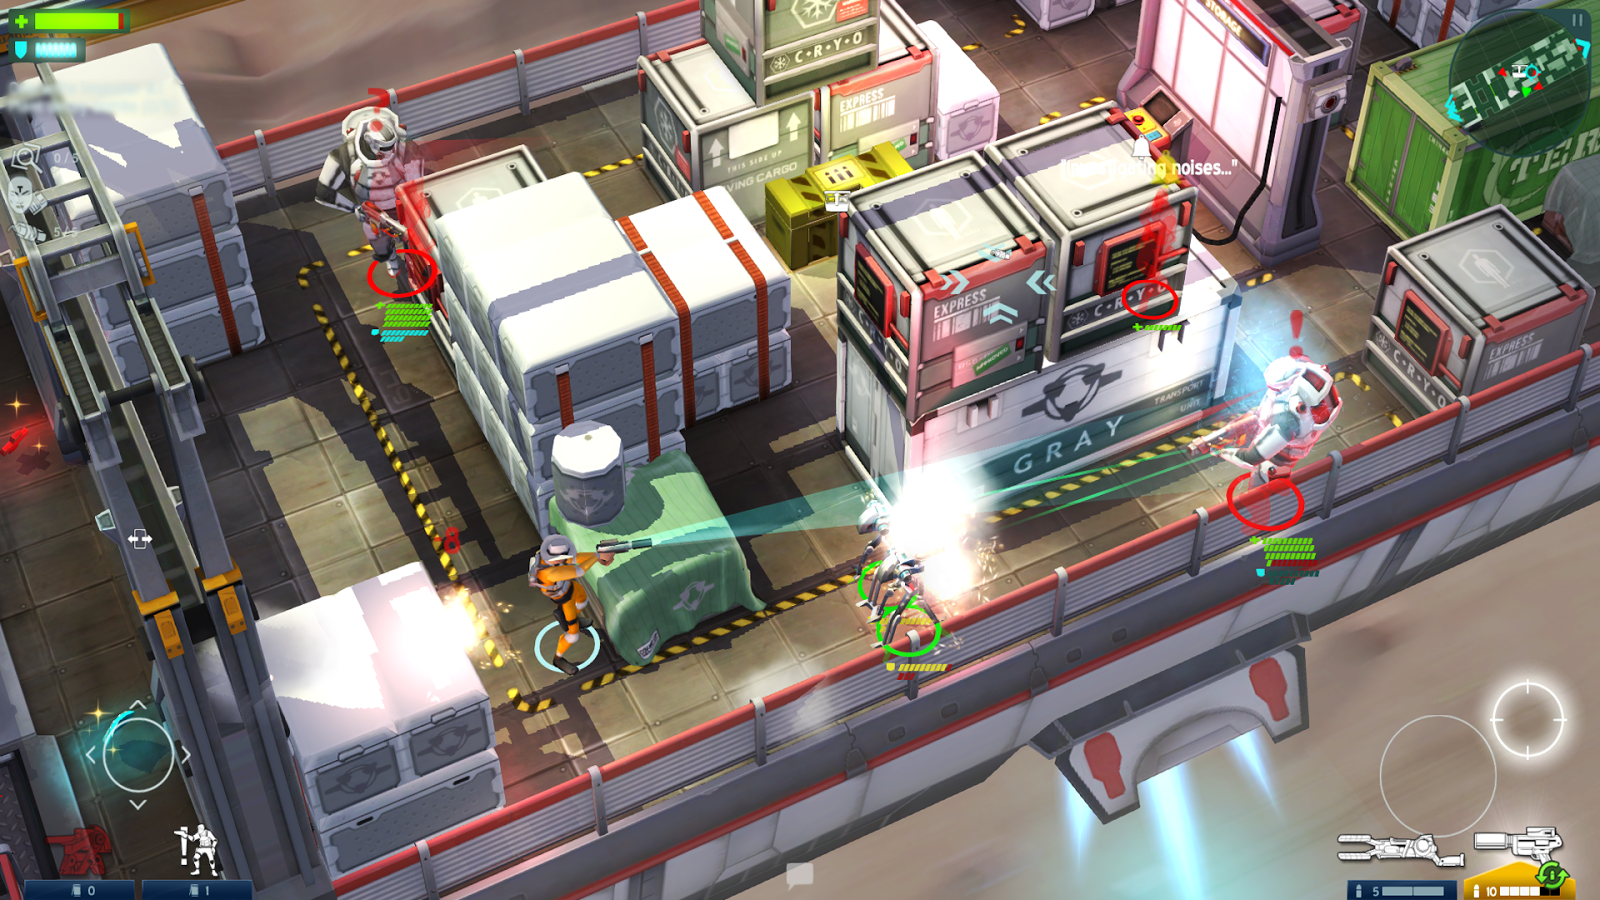 Space Marshals 1 3 0 APK Download - Android Action Games